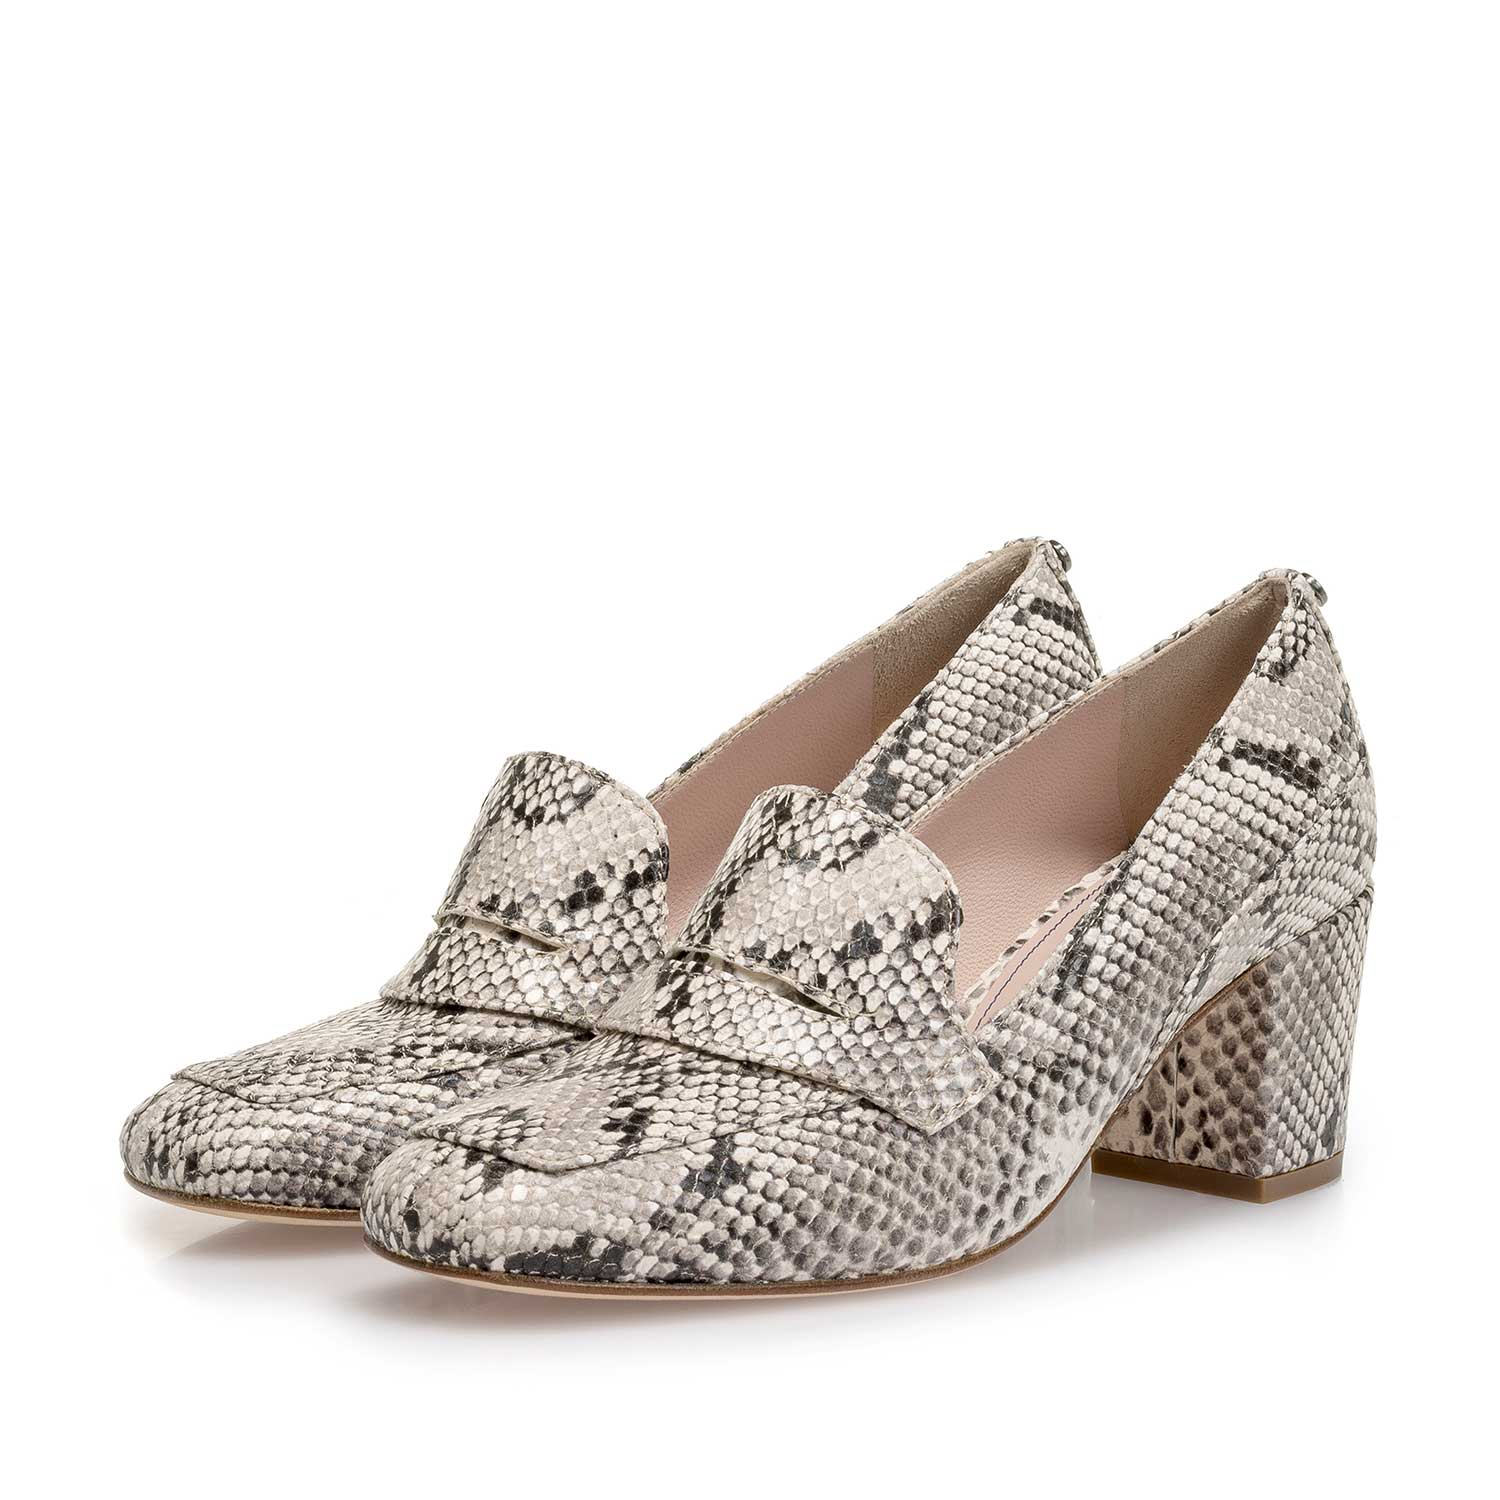 85514/04 - White snake print leather pumps